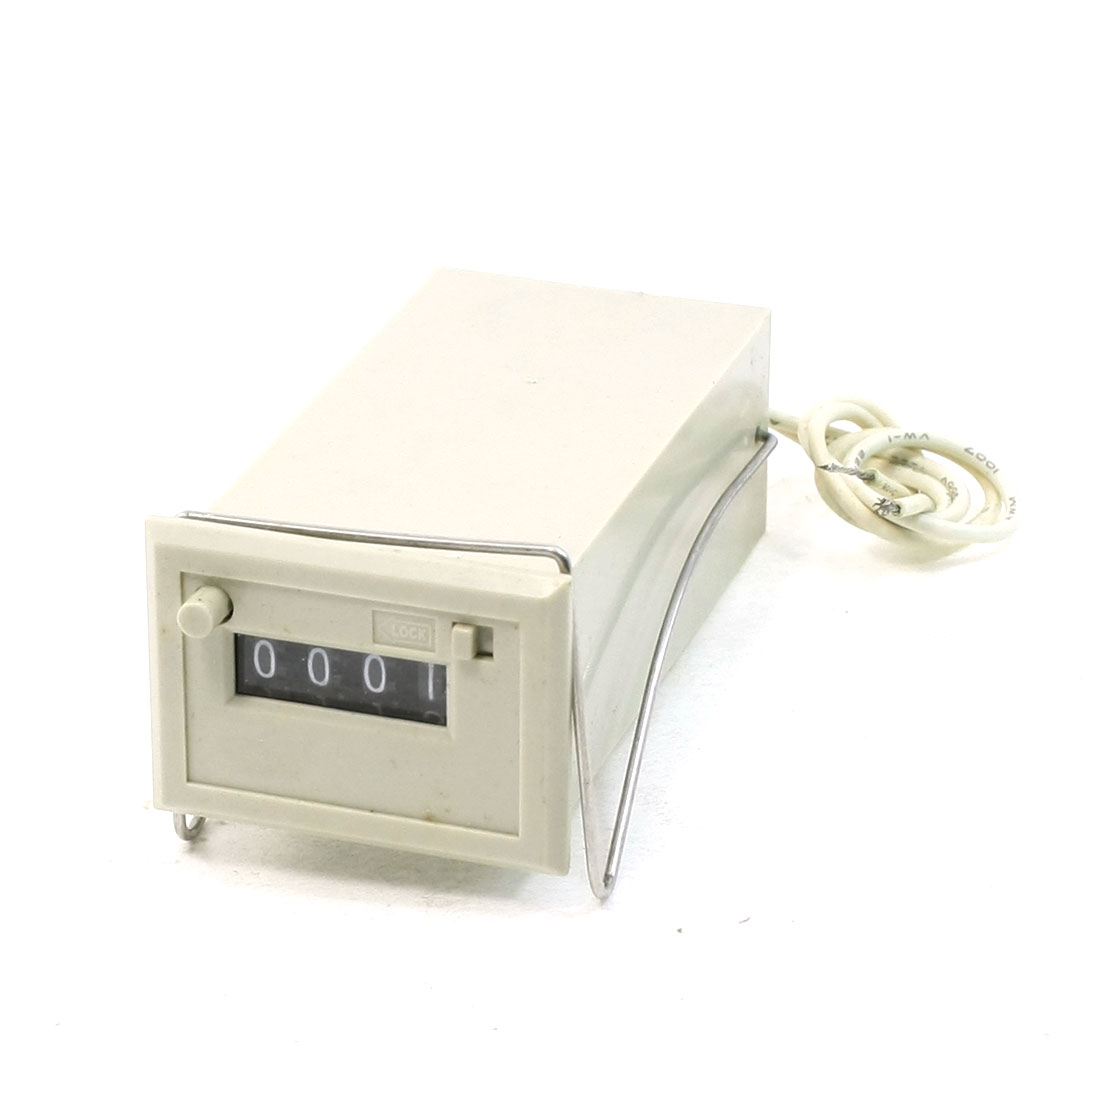 CSK4-DKW DC 24V 4 Digits 2-Wire Lockable Electronmagnetic Counter